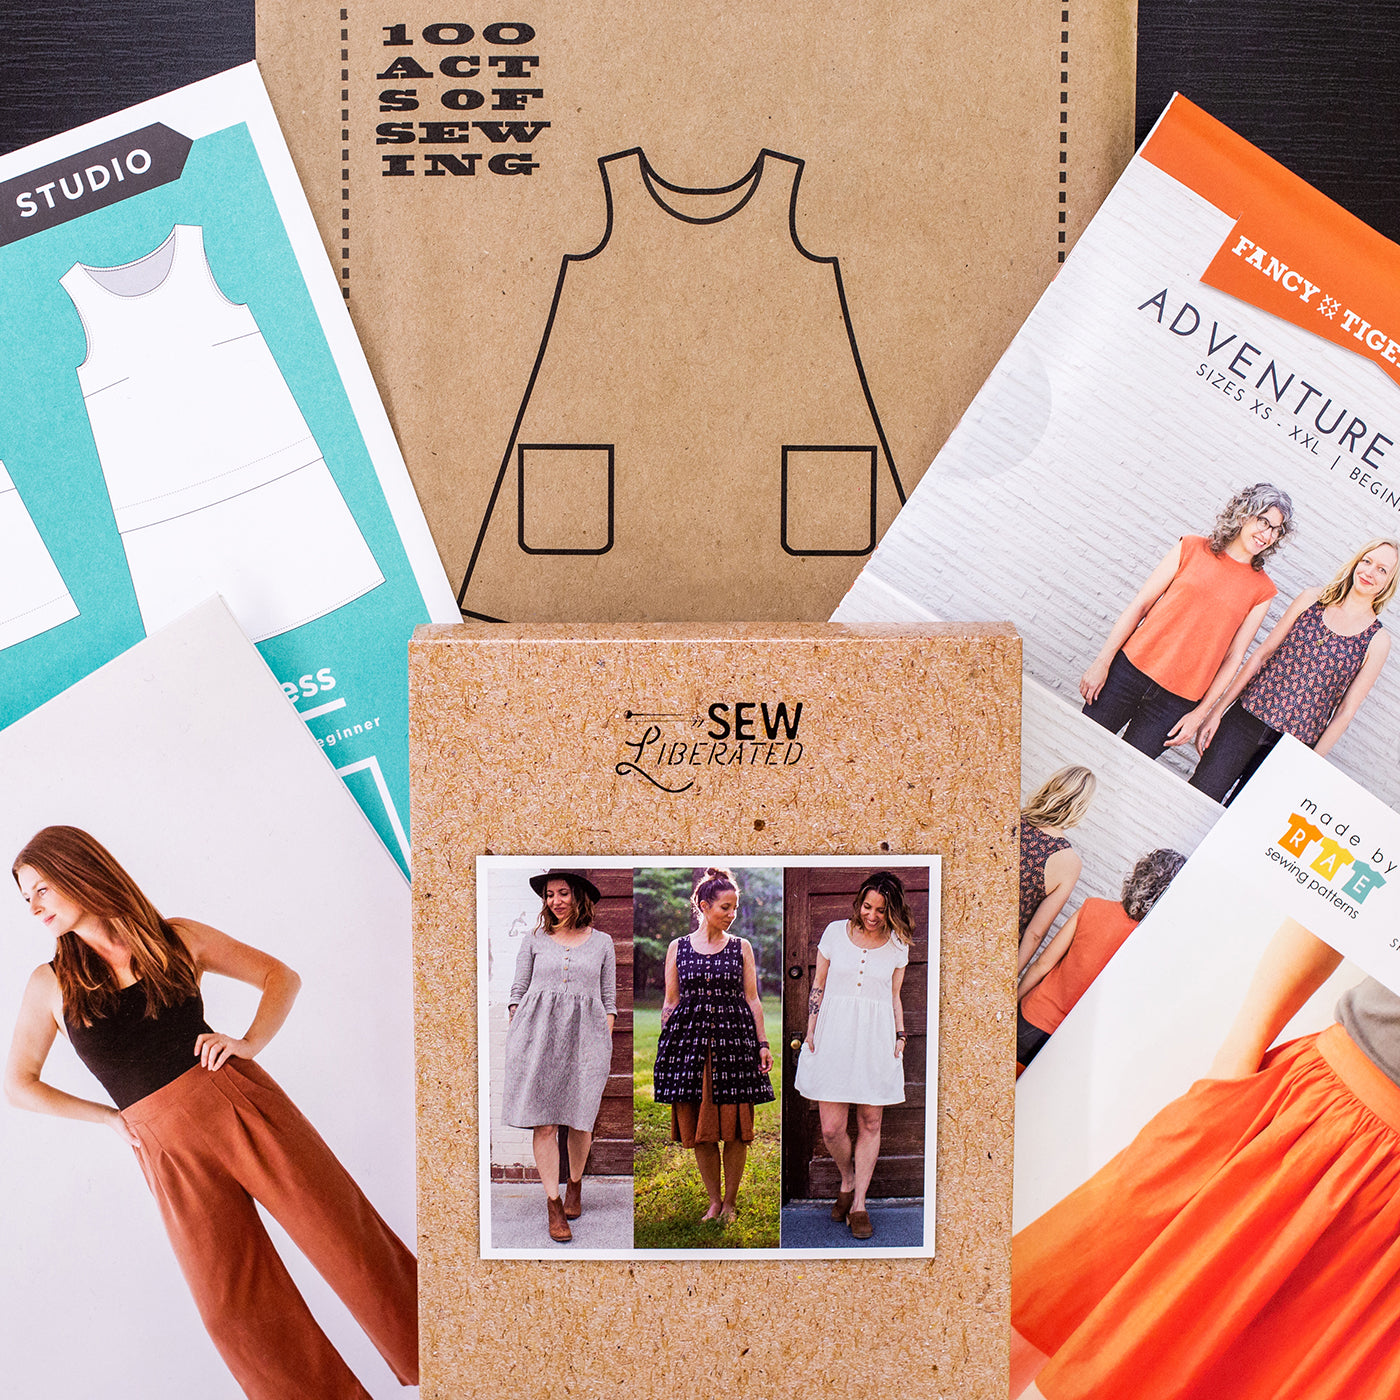 A collection of beginner friendly sewing patterns handpicked for summer